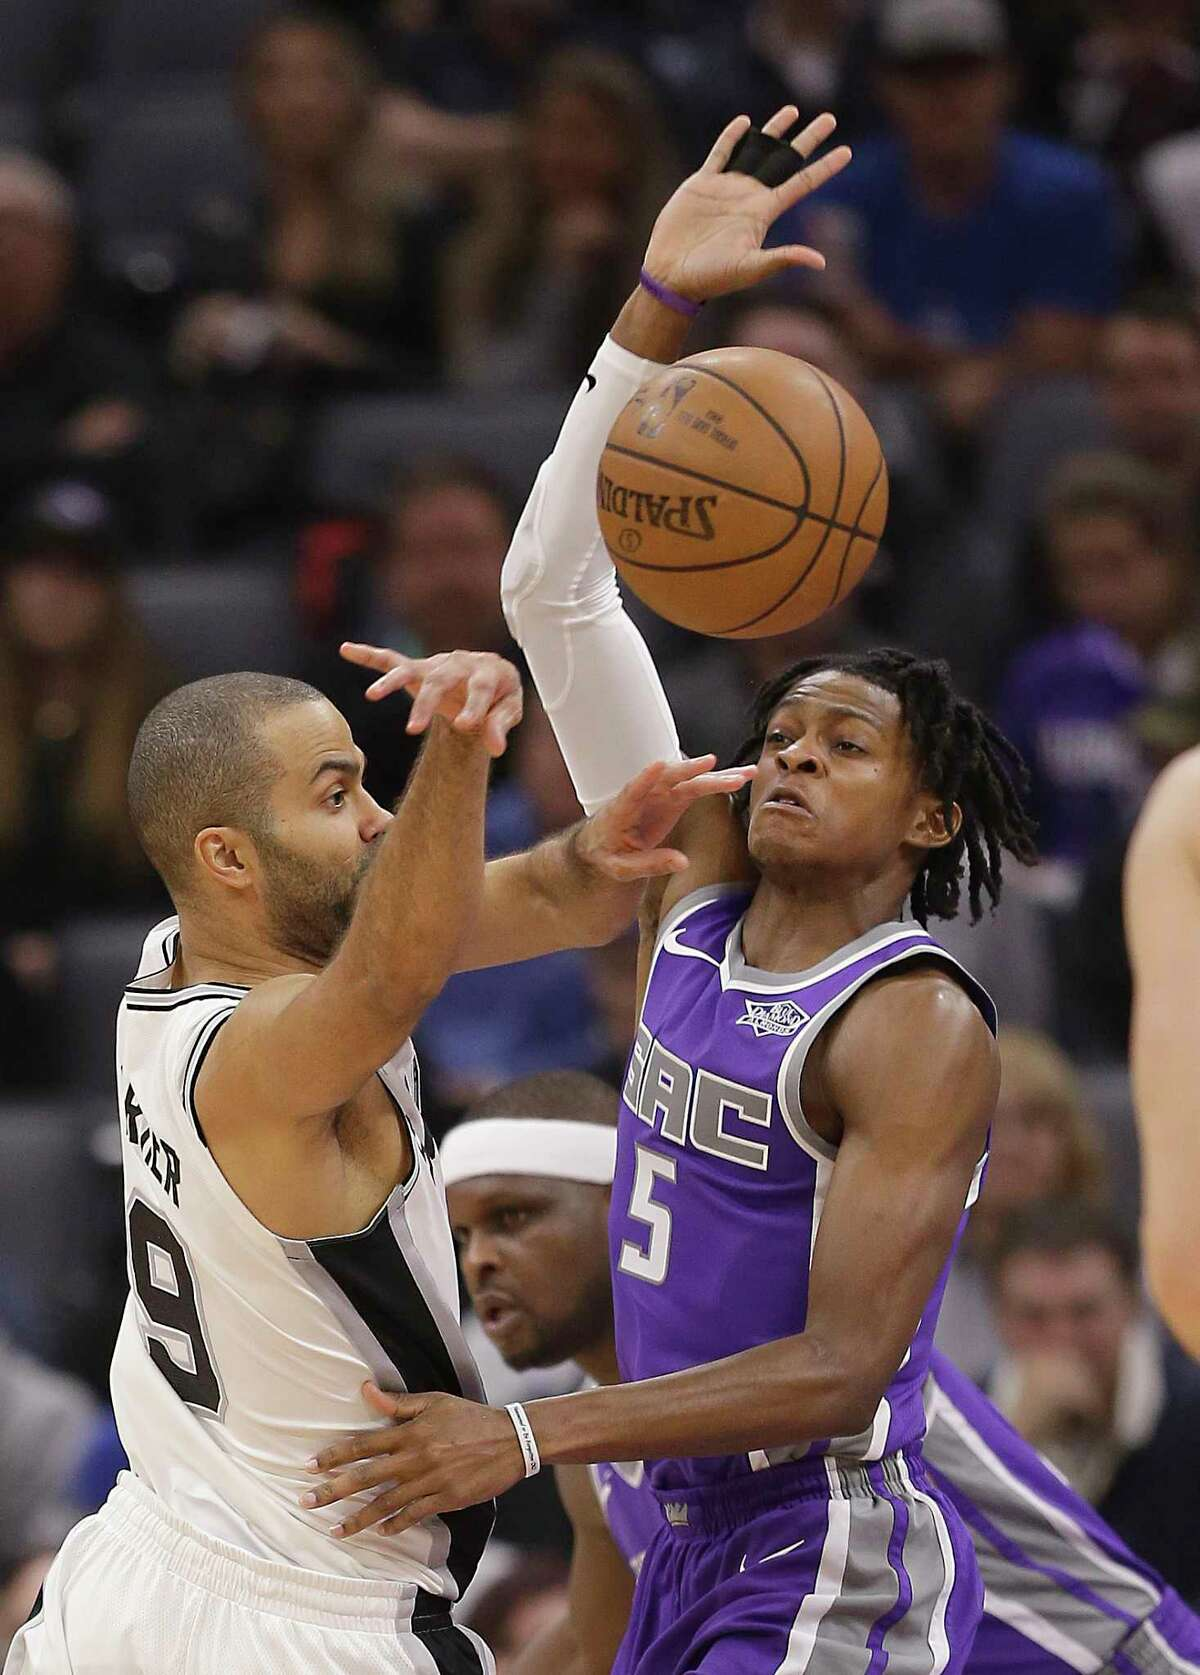 San Antonio Spurs guard Tony Parker, left, passes against Sacramento Kings center Willie Cauley-Stein during the first quarter of an NBA basketball game in Sacramento, Calif., Wednesday, Nov. 16, 2016. (AP Photo/Rich Pedroncelli)